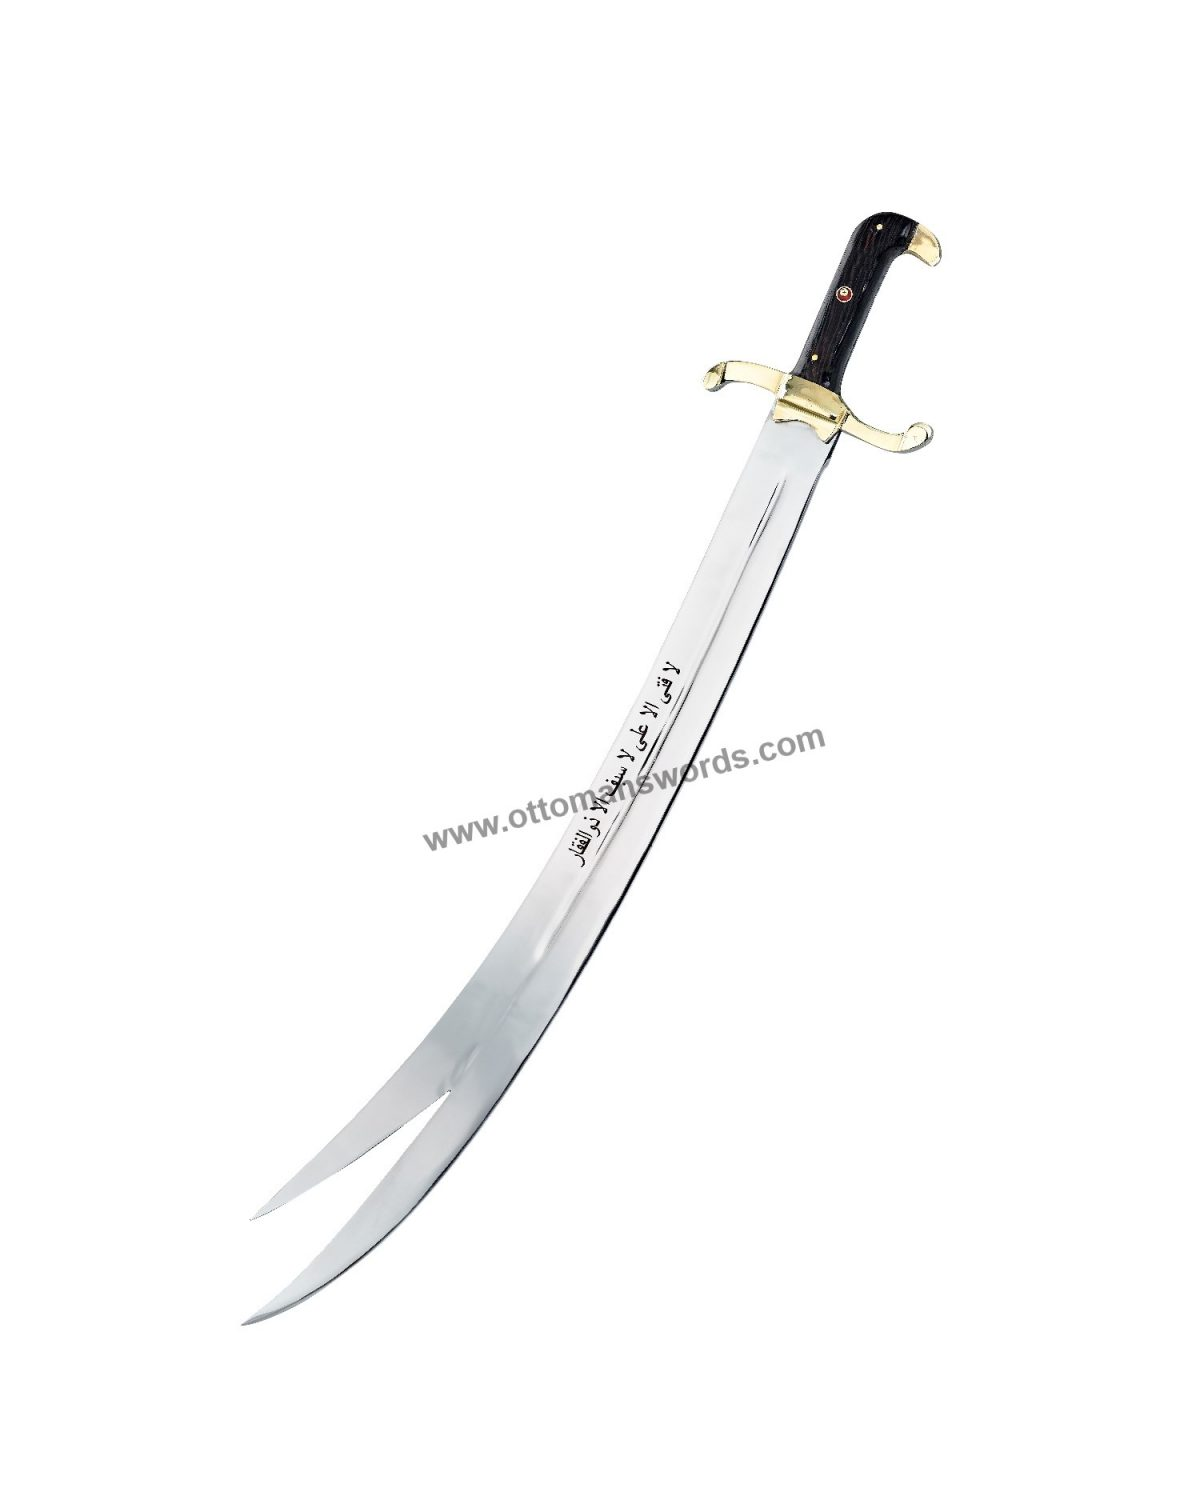 zulfiqar sword for sale